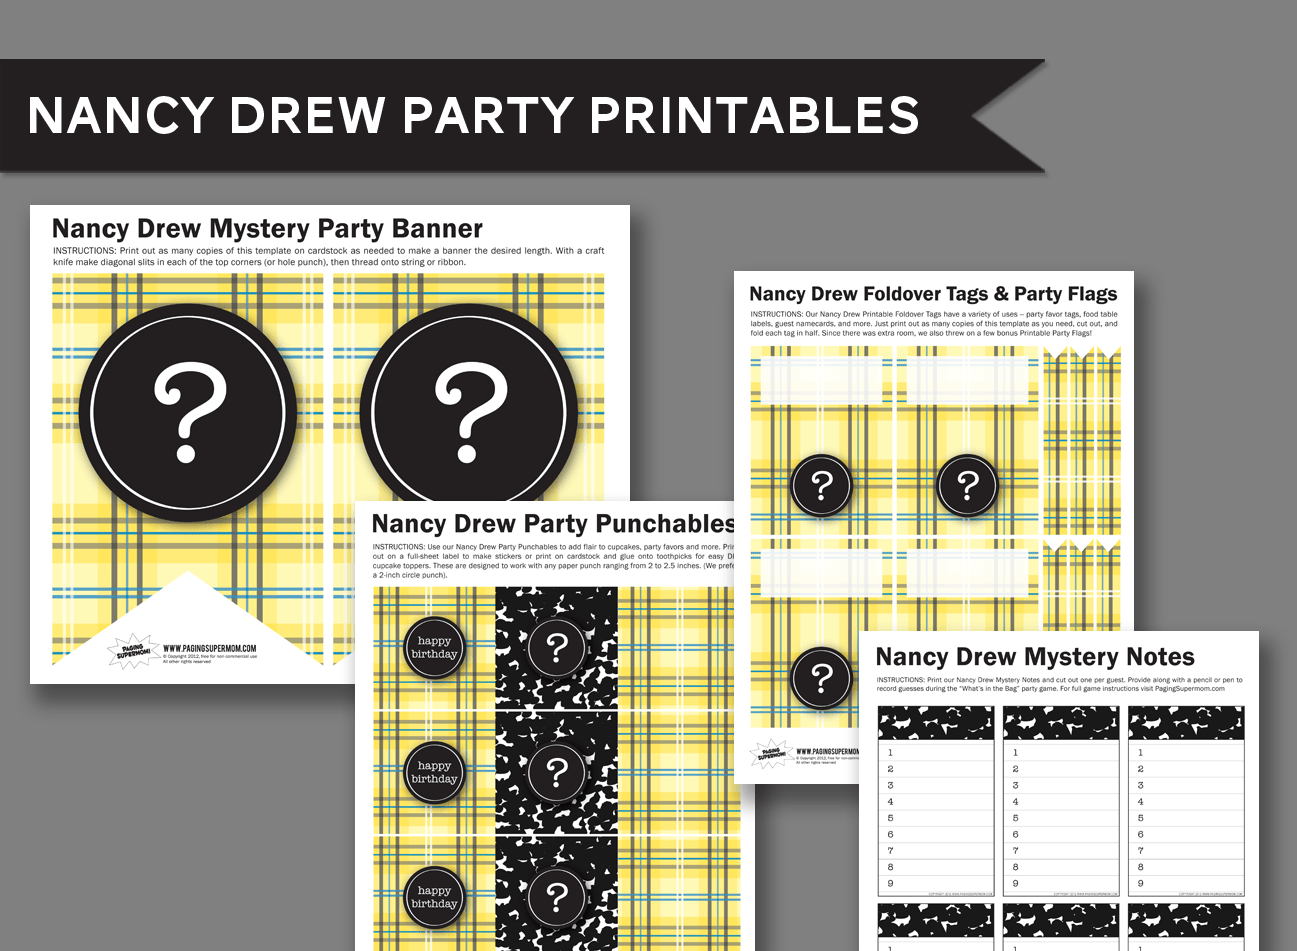 Want To Have A Nancy Drew Party